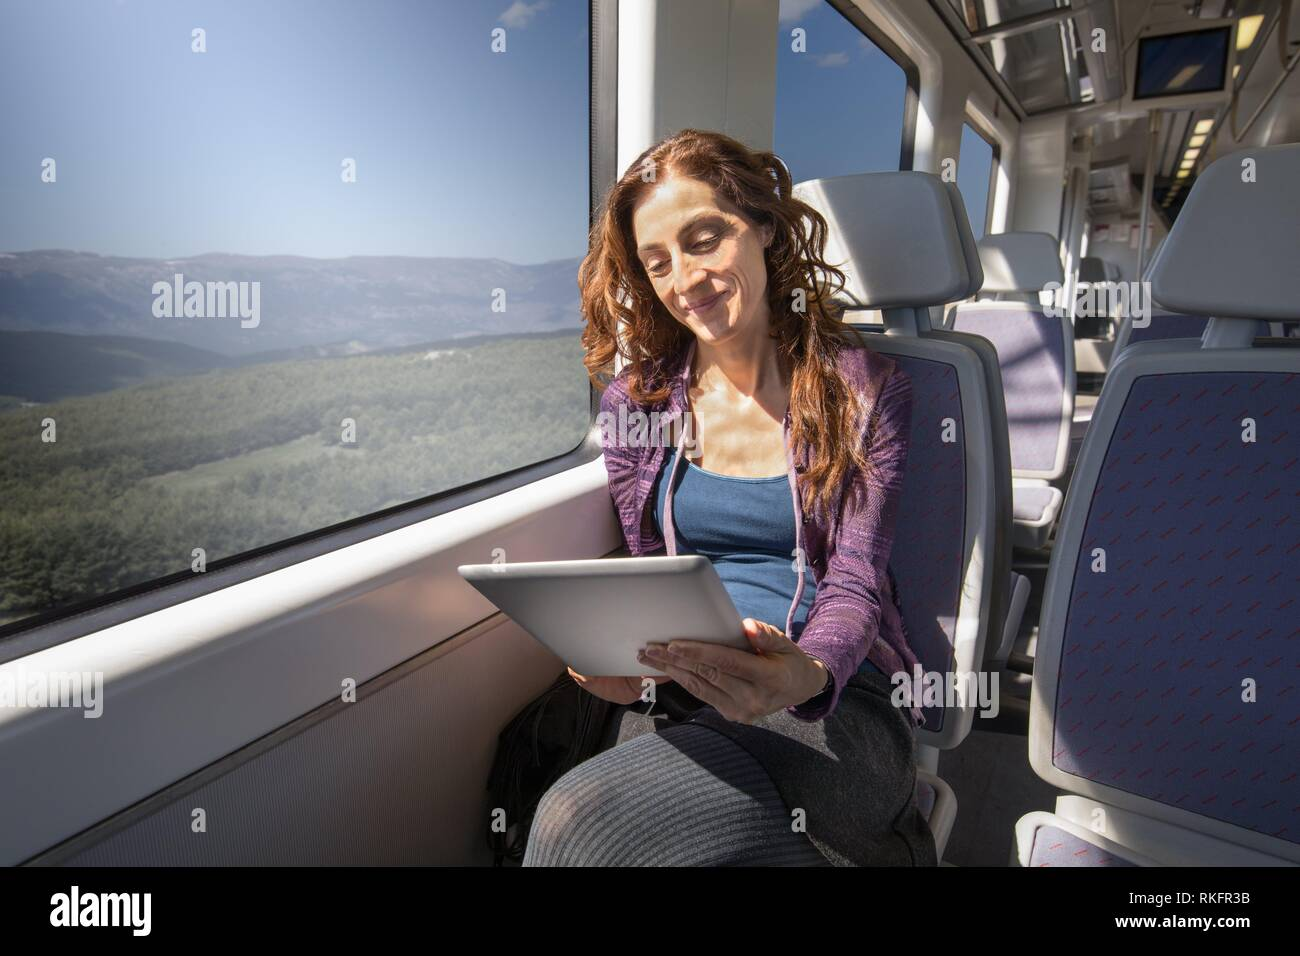 red hair smiling woman dressed in purple and blue, traveling by train sitting reading digital tablet or ebook. - Stock Image